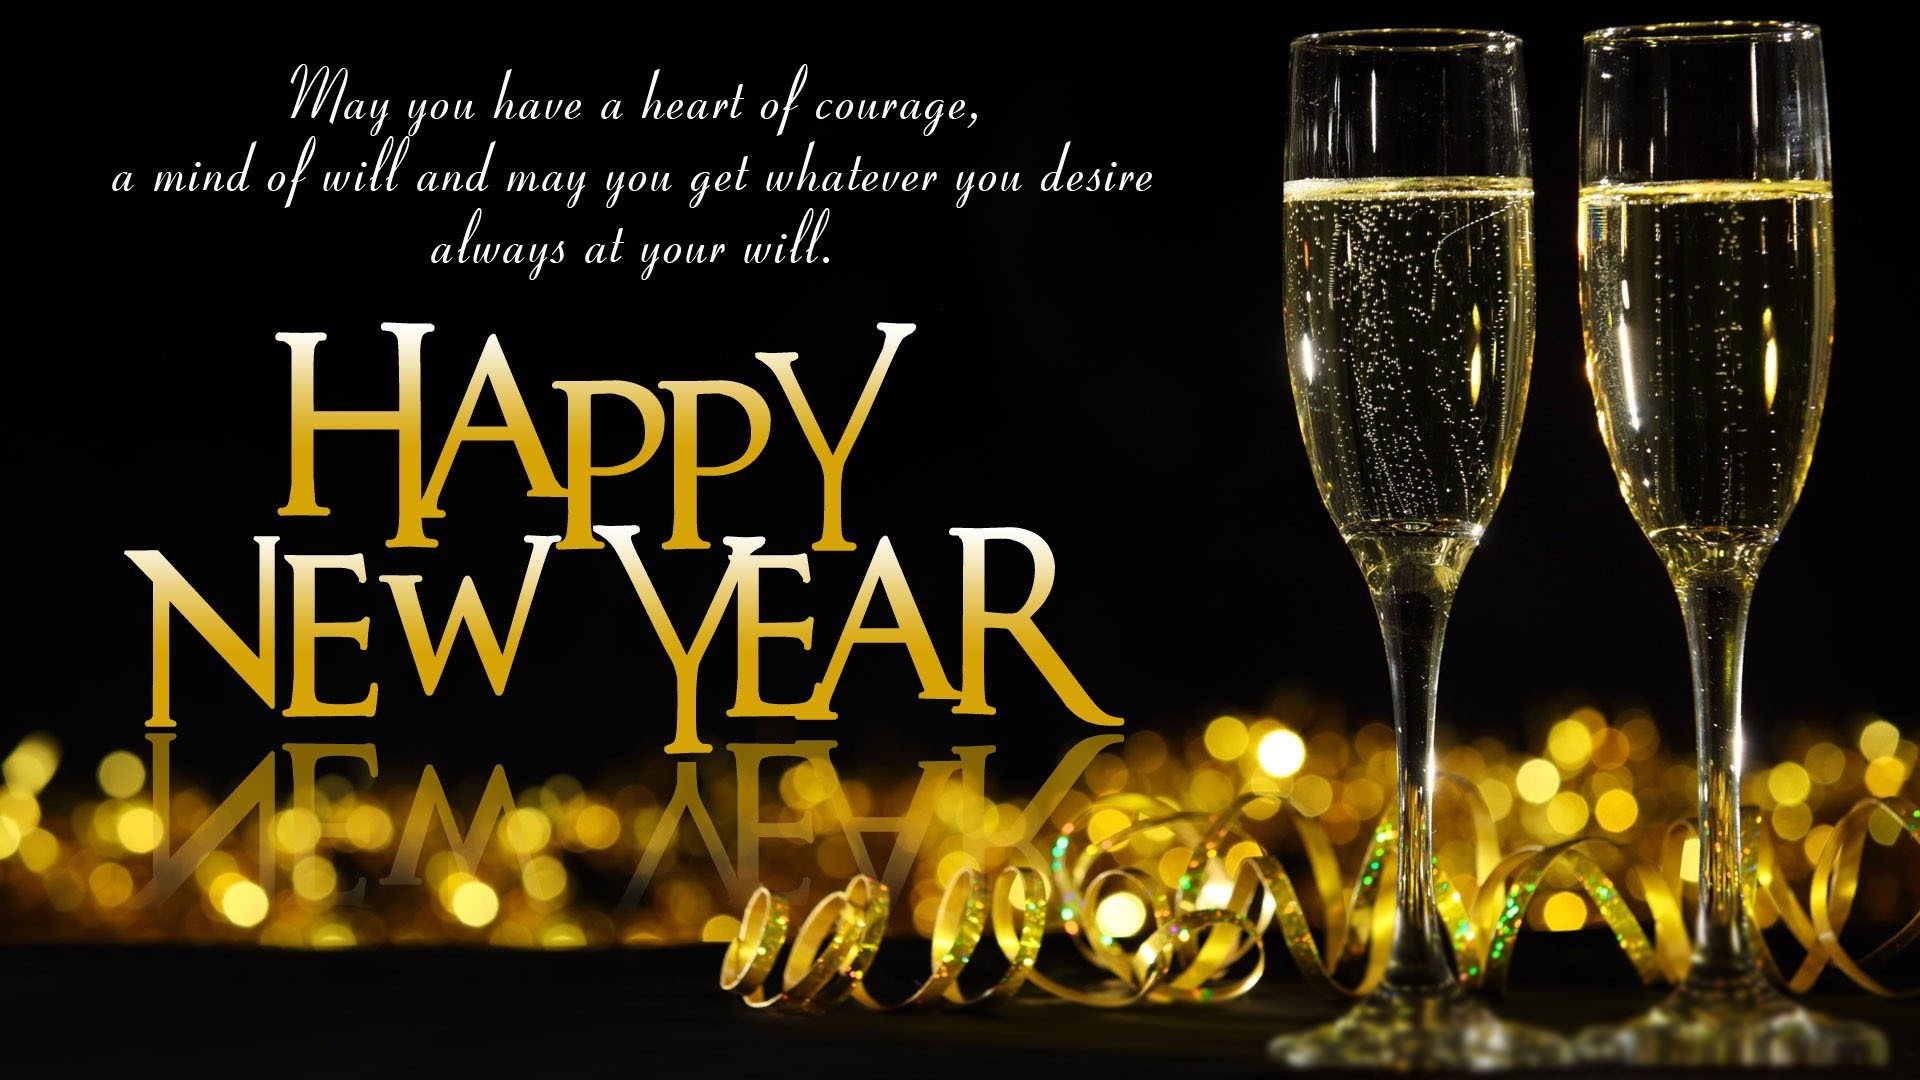 New Year 2015 Celebration Wallpaper No3 HD Wallpapers High 1920x1080